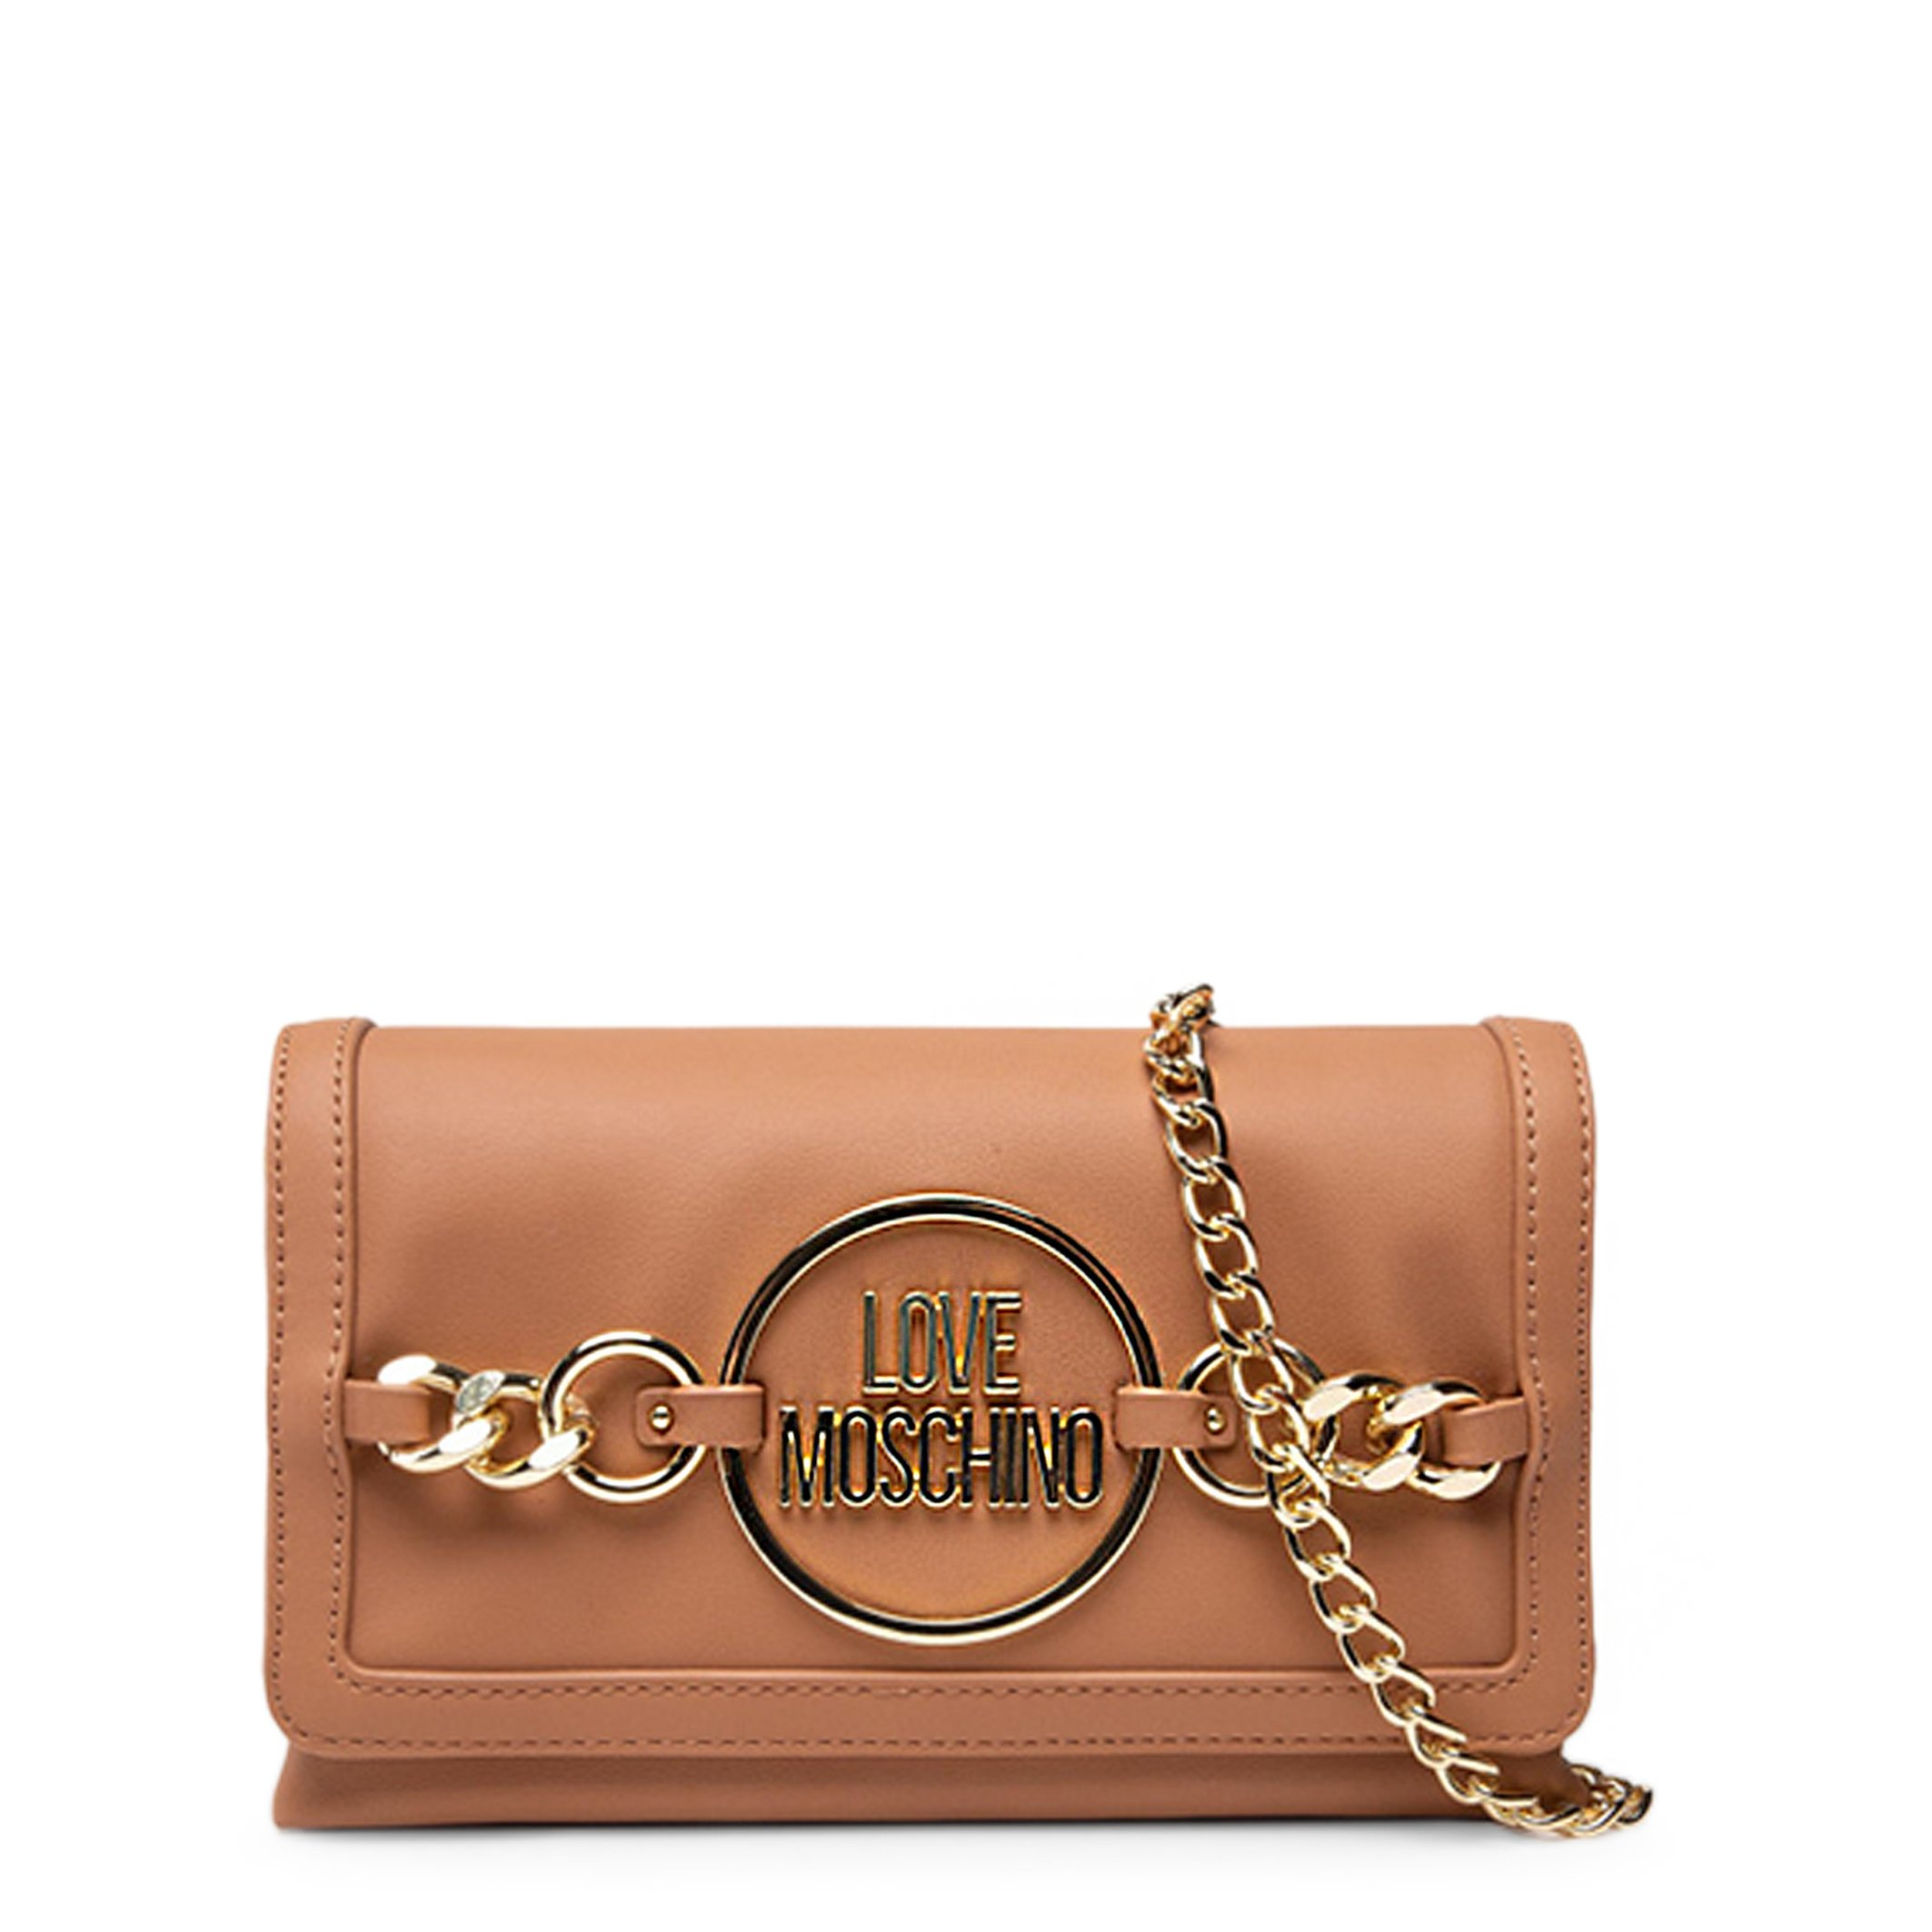 Love Moschino Women's Crossbody Bag Various Colours JC4152PP1DLE0 - brown NOSIZE